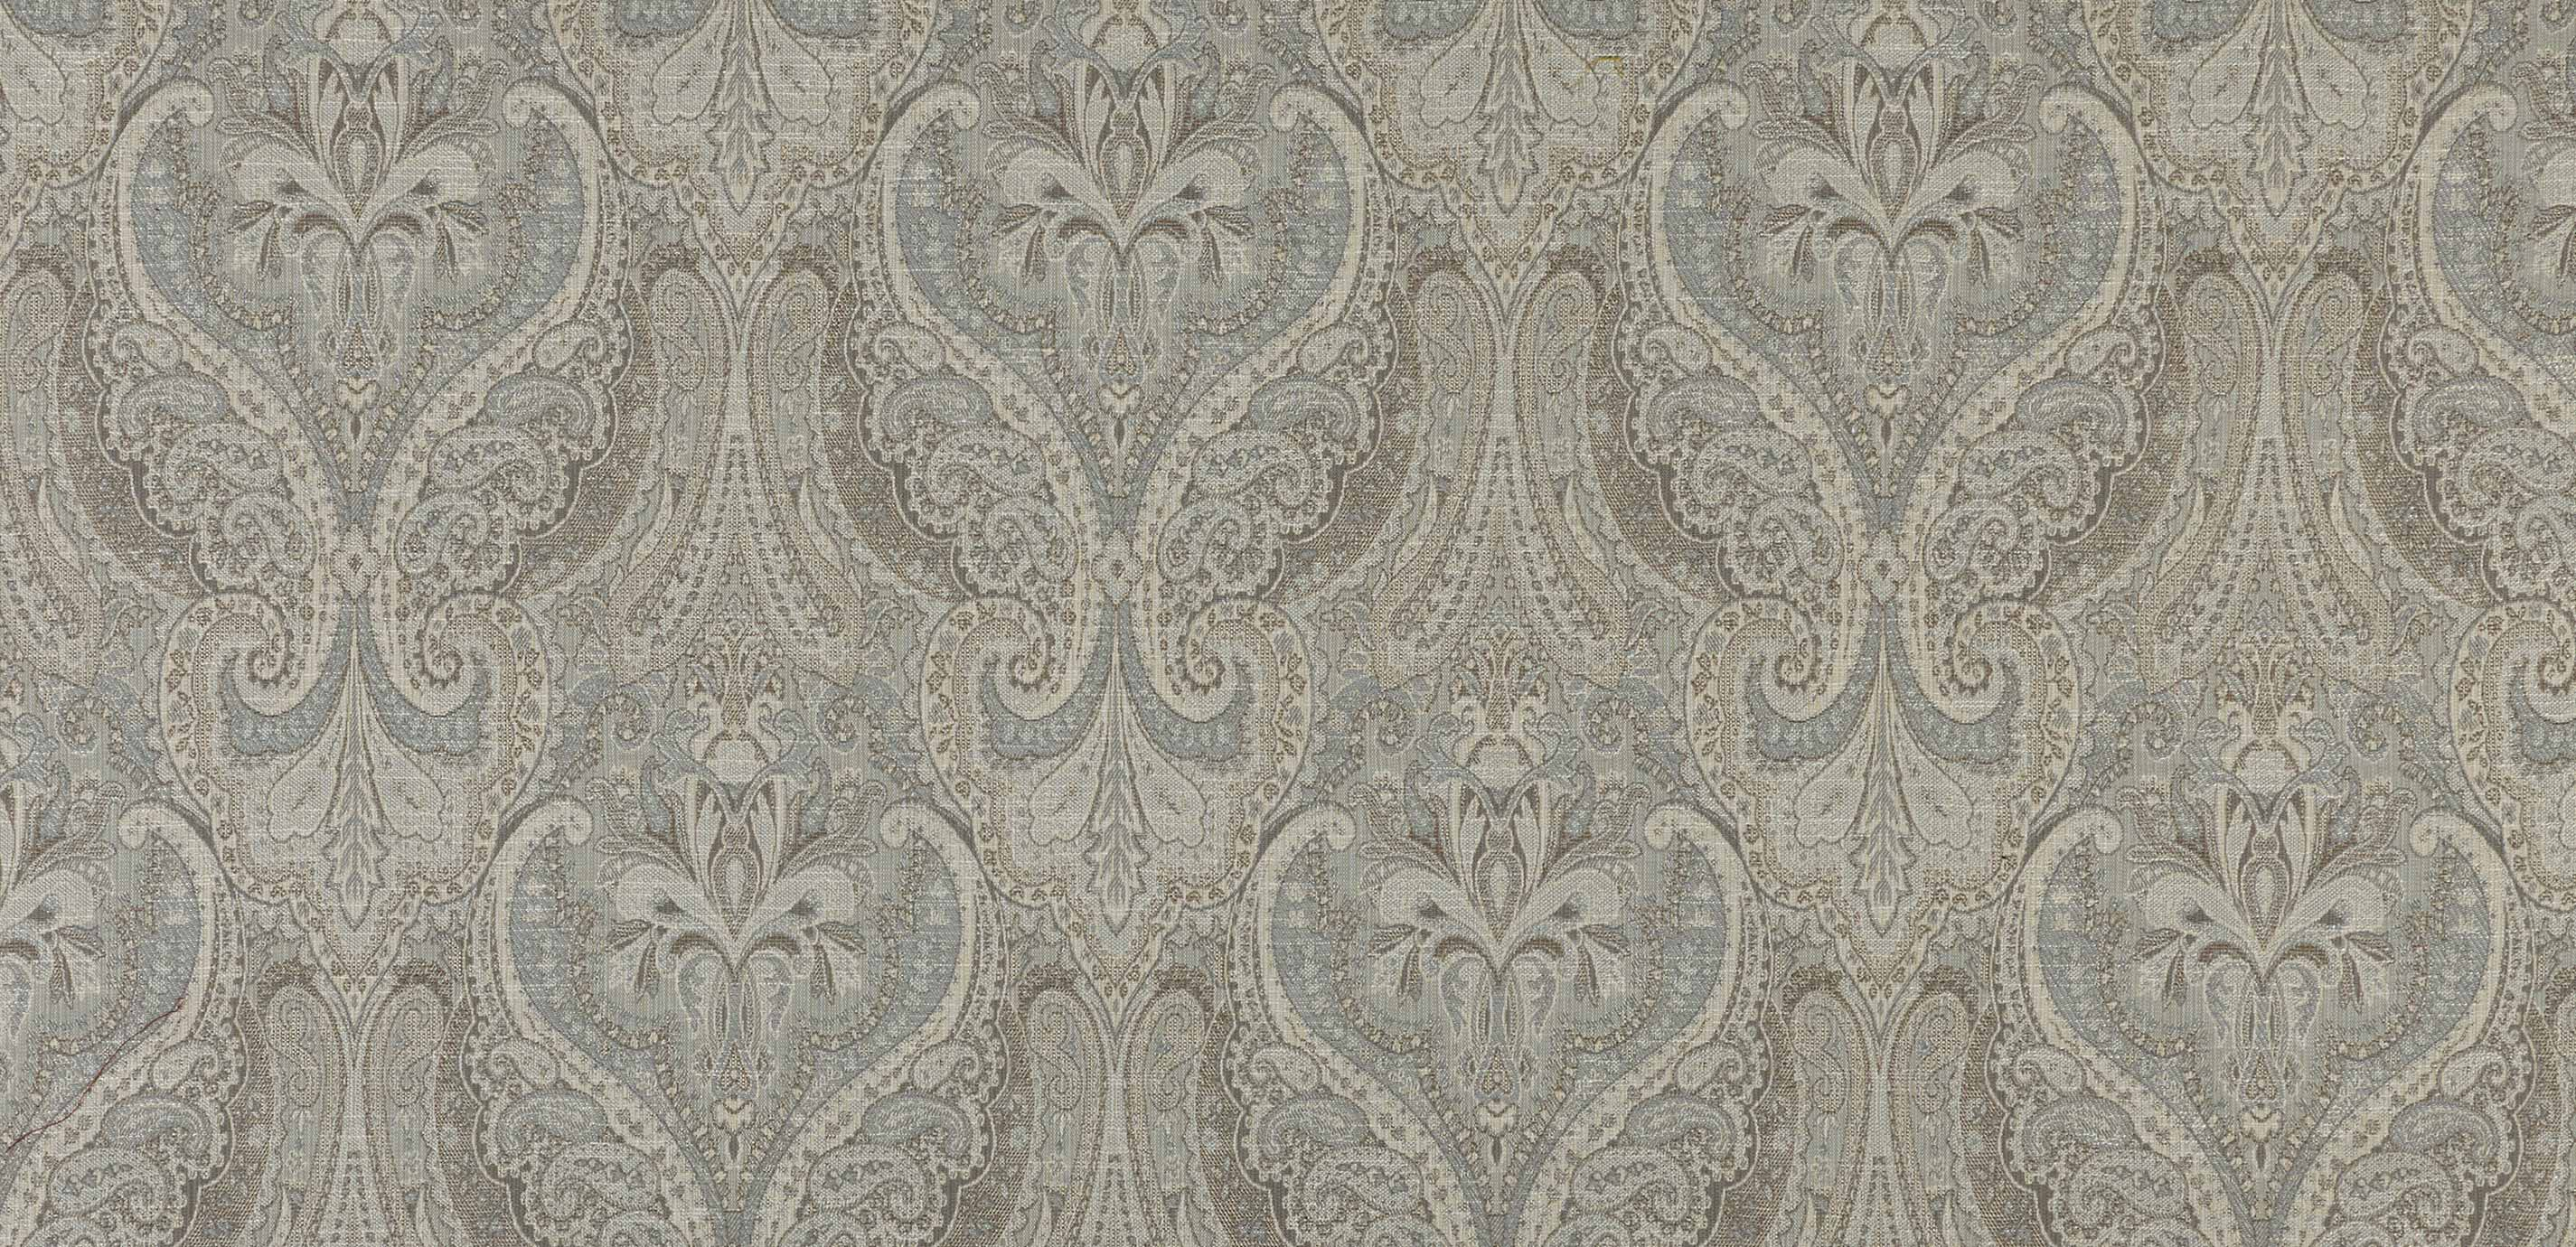 Romero mineral fabric ethan allen for Fabric sites